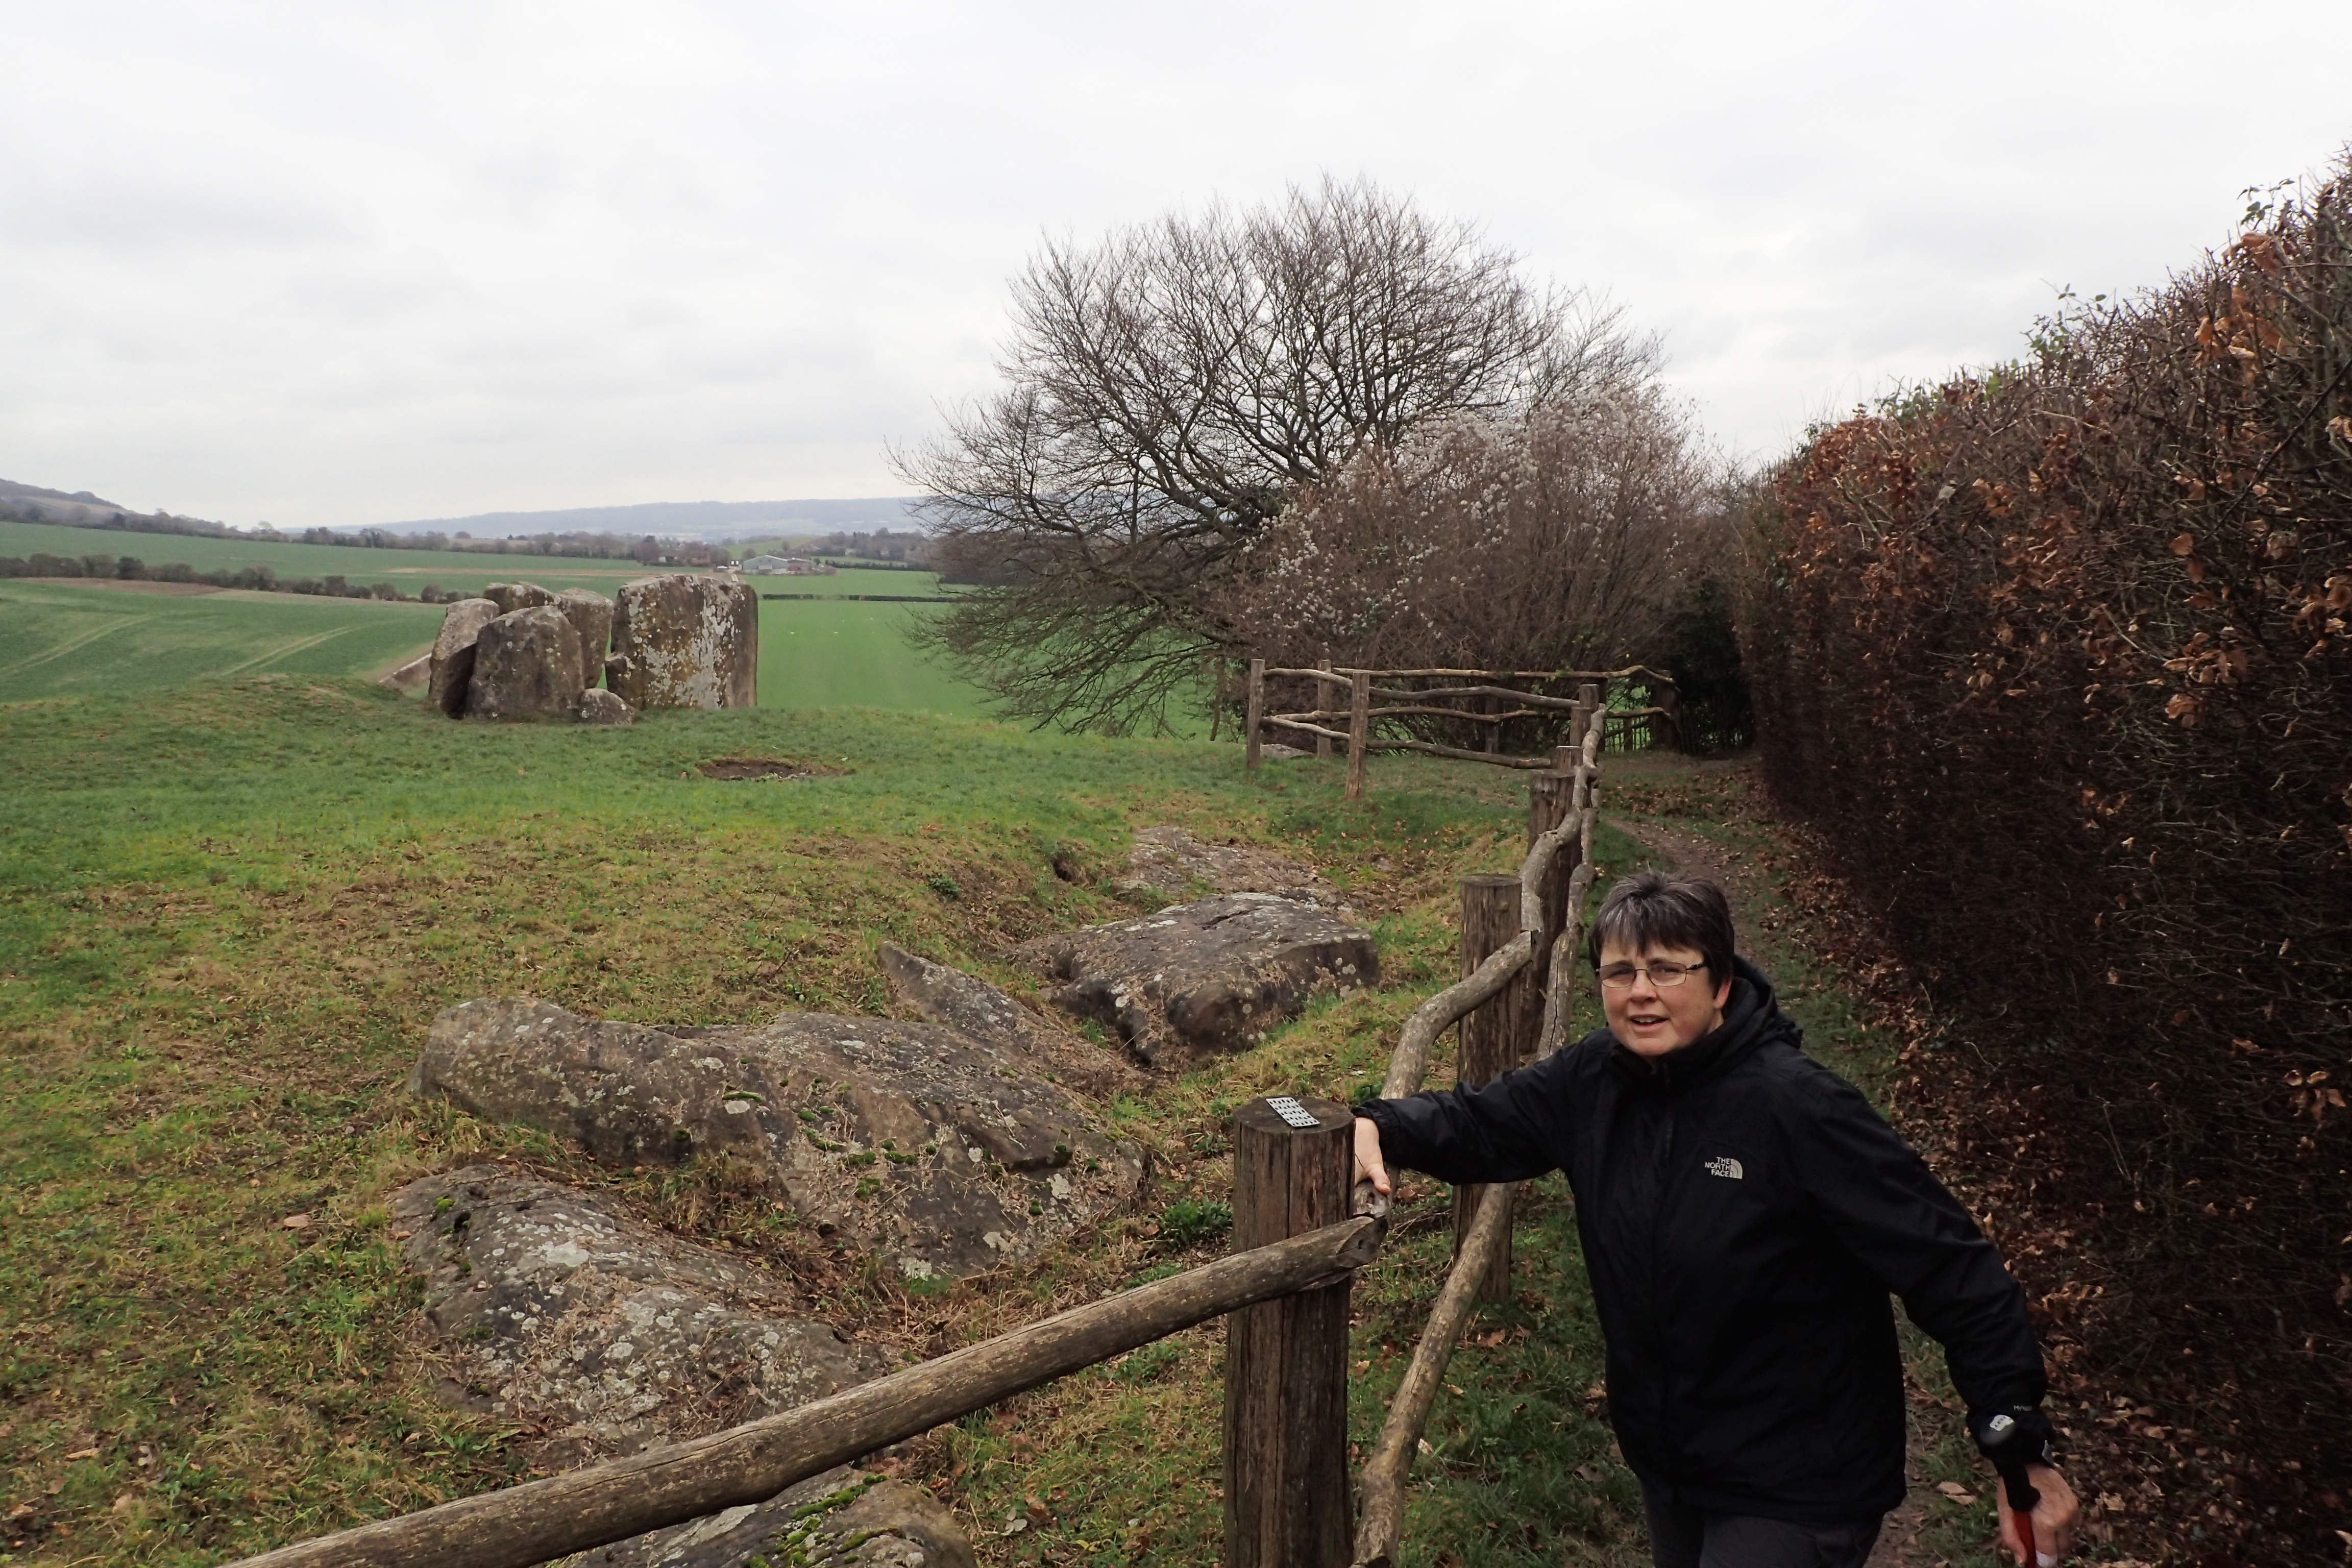 Coldrum Stones Long Barrow was excavated in 1910. It contained the remains of 22 people, men, women and children